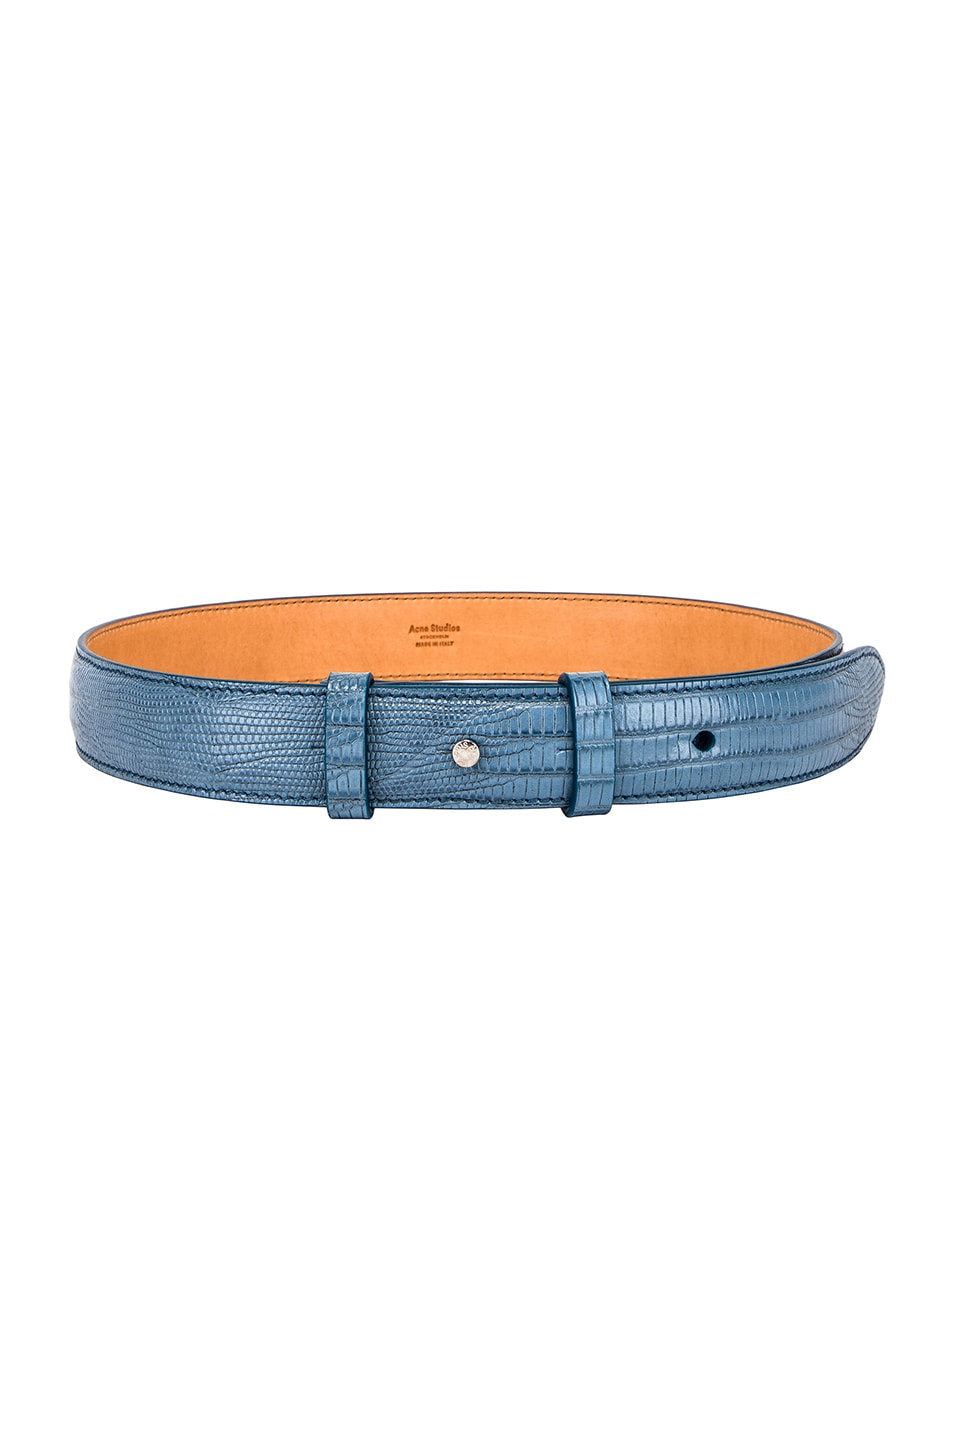 Image 2 of Acne Studios Anemone Belt in Light Blue